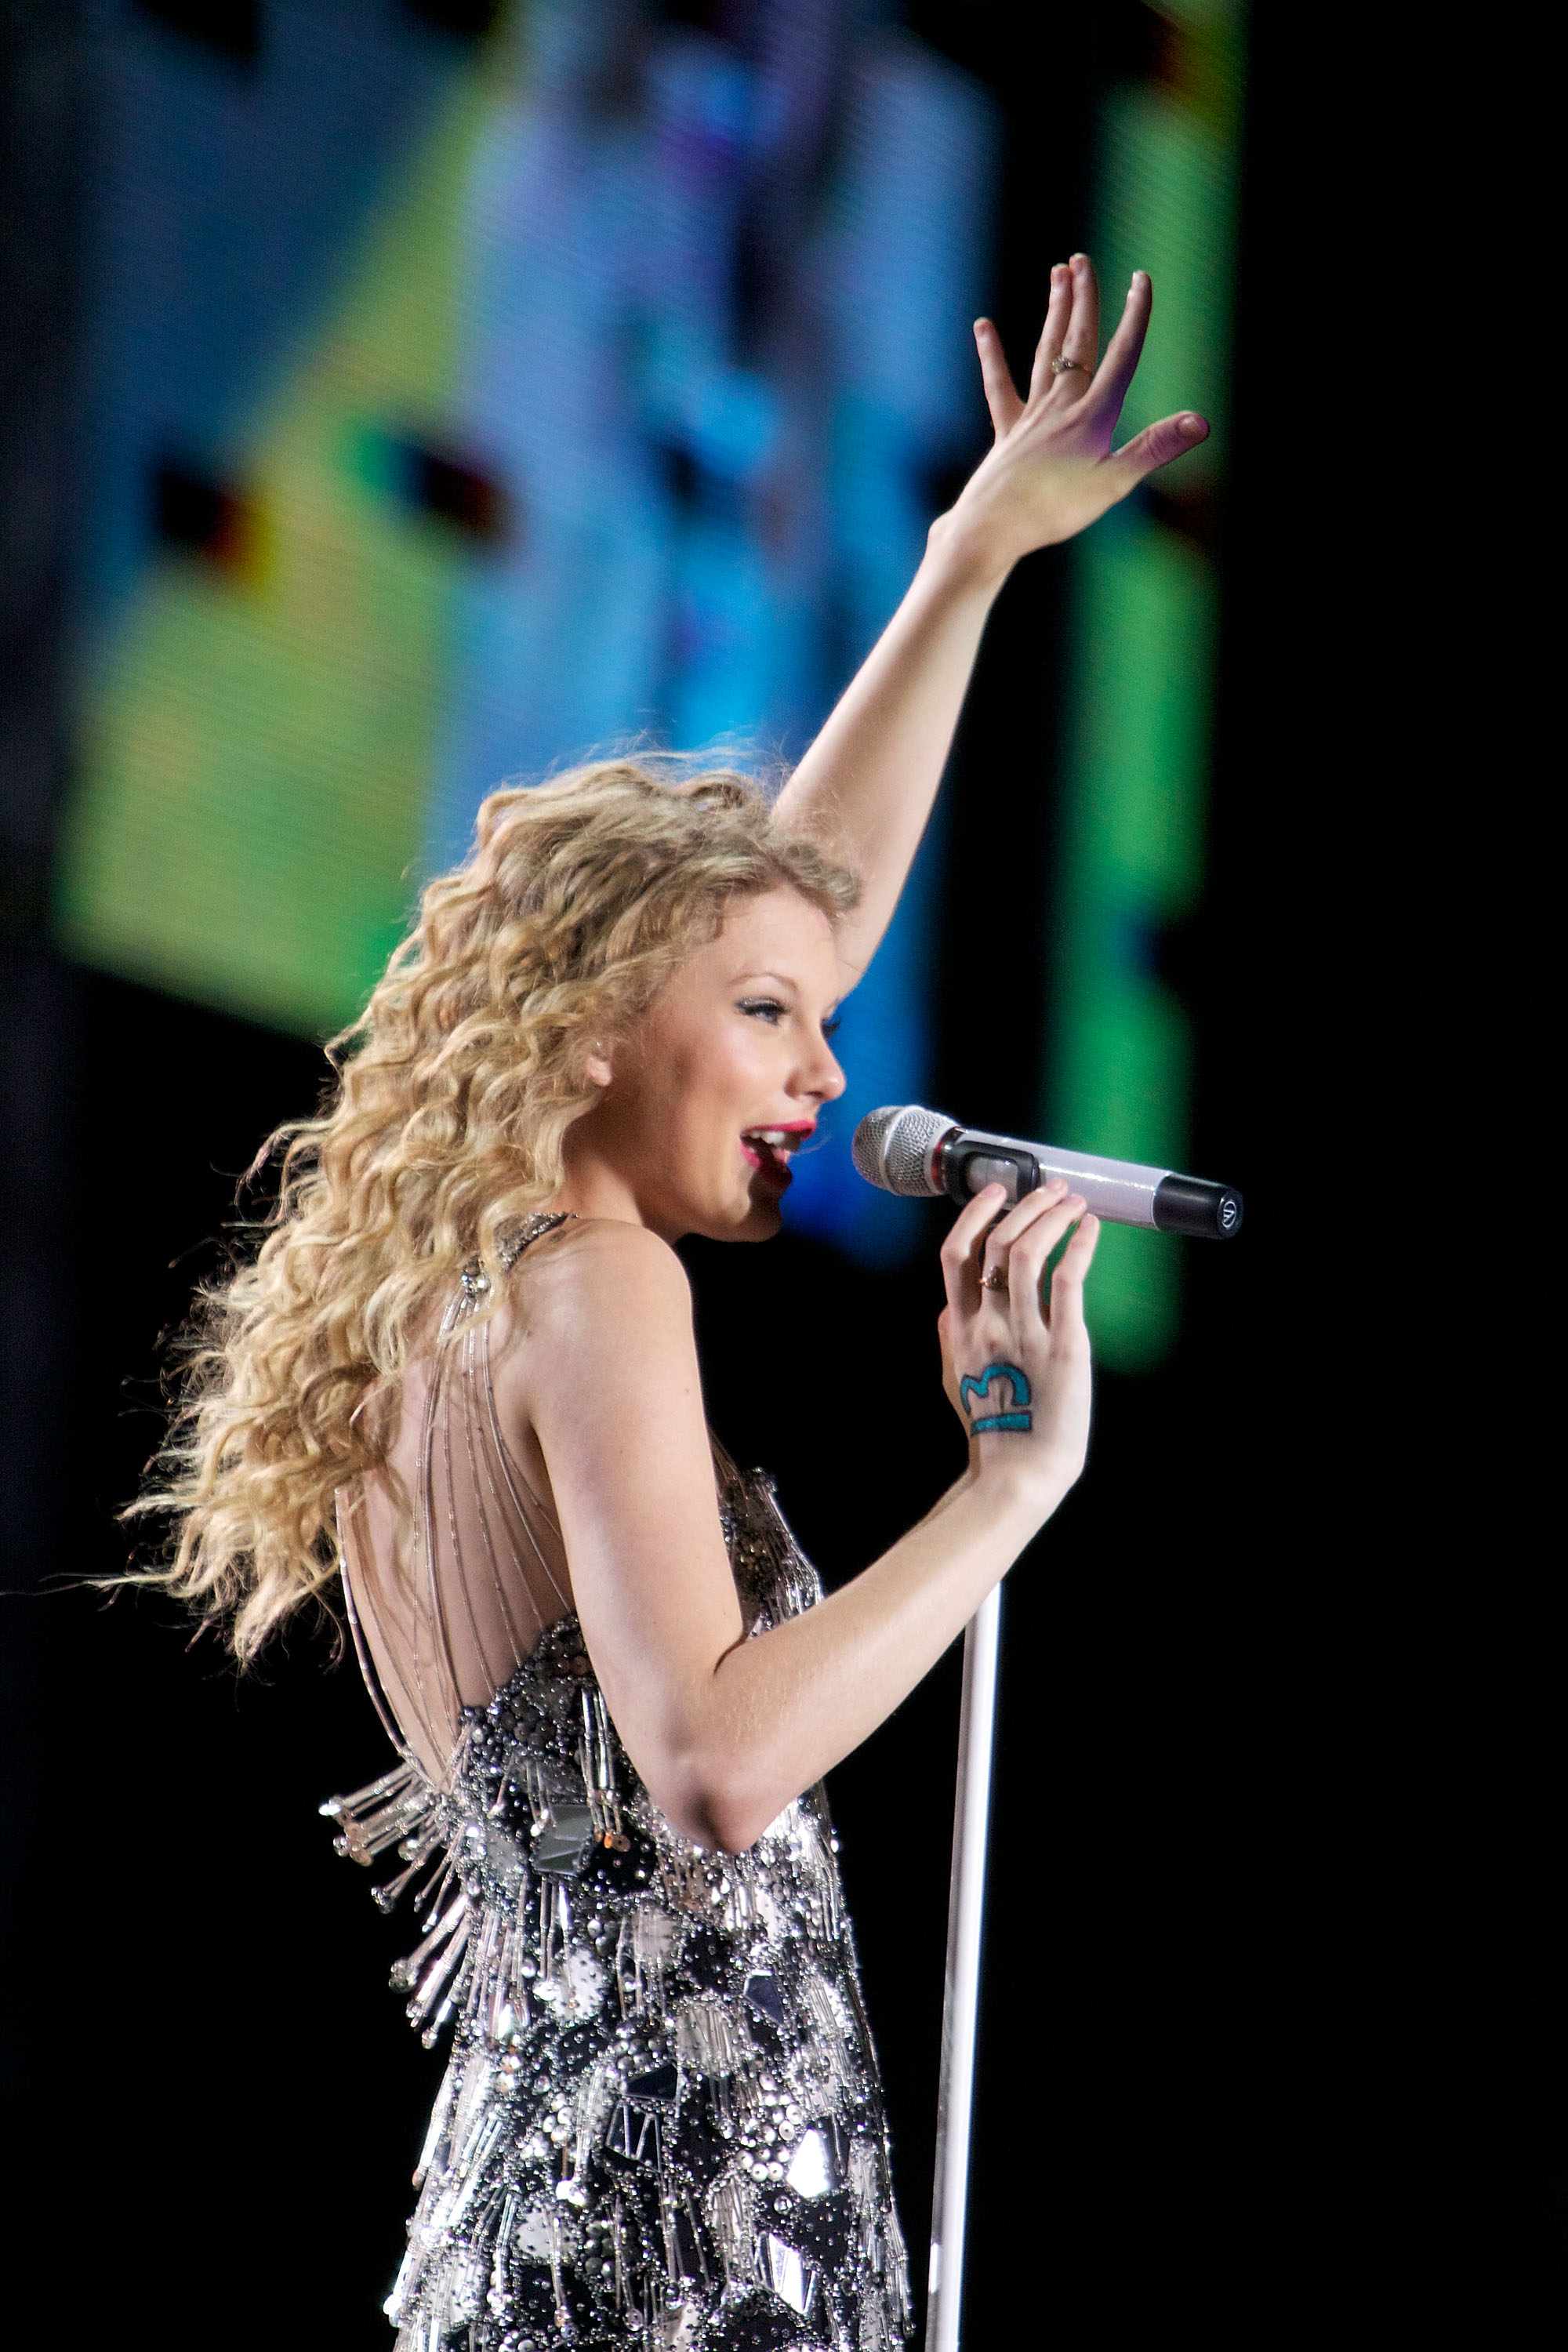 32601_Taylor_swift_performs_her_Fearless_Tour_at_Tiger_Stadium_021_122_402lo.jpg